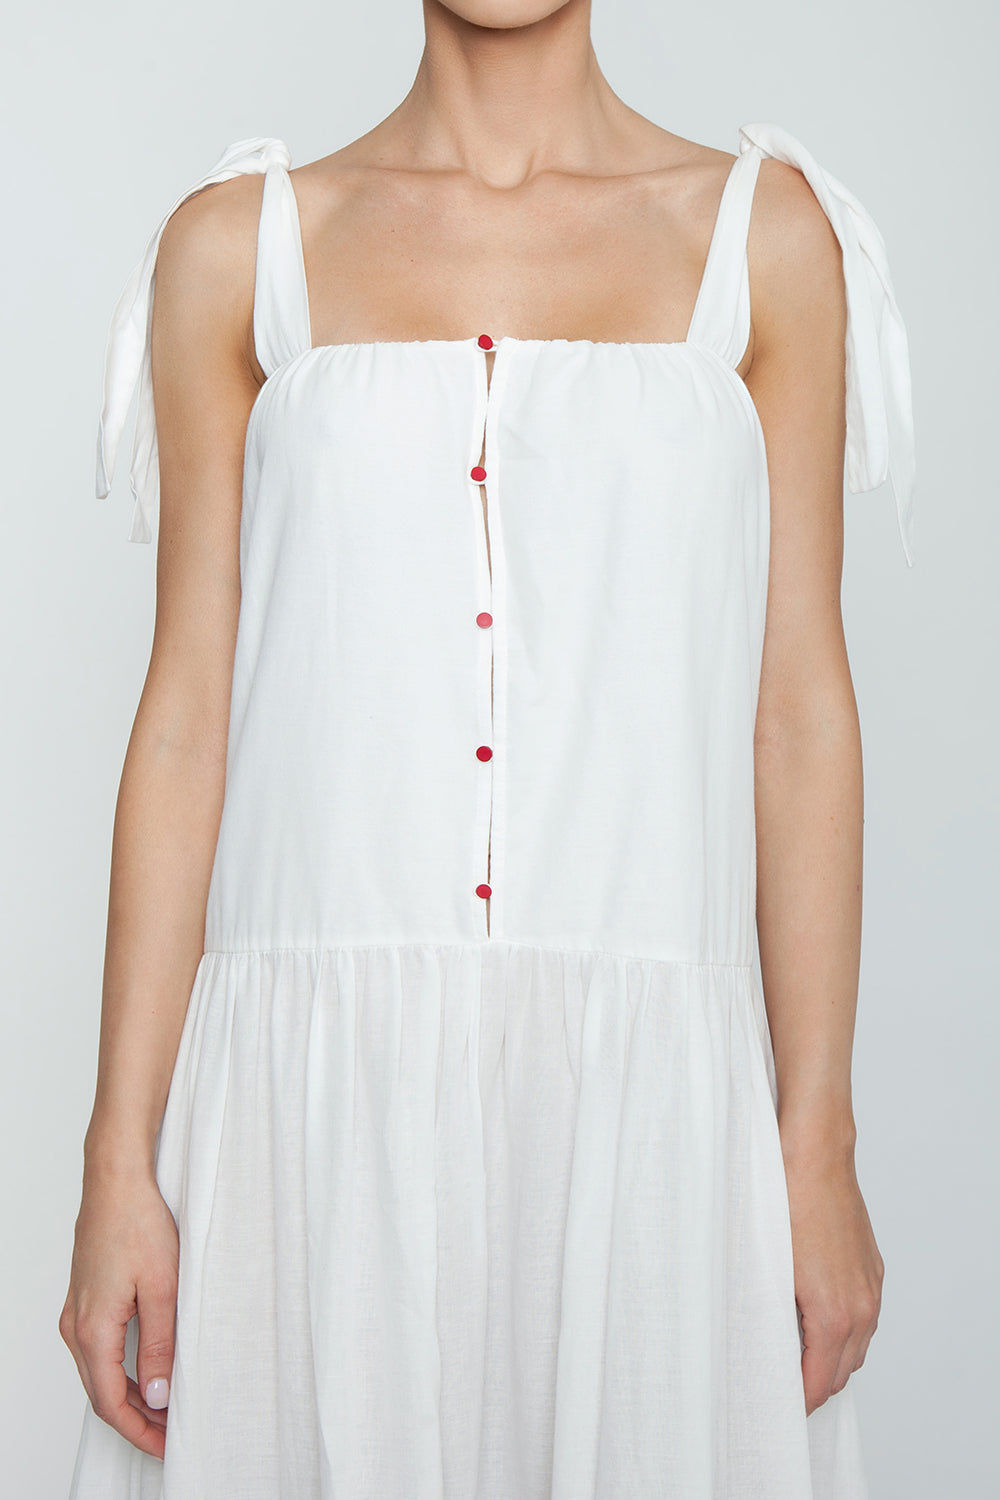 CLUBE BOSSA Bolkan Shoulder Tie Button Front Maxi Dress -  White & Jazzy Fringes Red Dress | White & Jazzy Fringes Red| Clube Bossa Bolkan Shoulder Tie Button Front Maxi Dress -  White & Jazzy Fringes Red Features:  Square neckline white long dress Shoulder tie straps Buttoned design Loose fit Front View